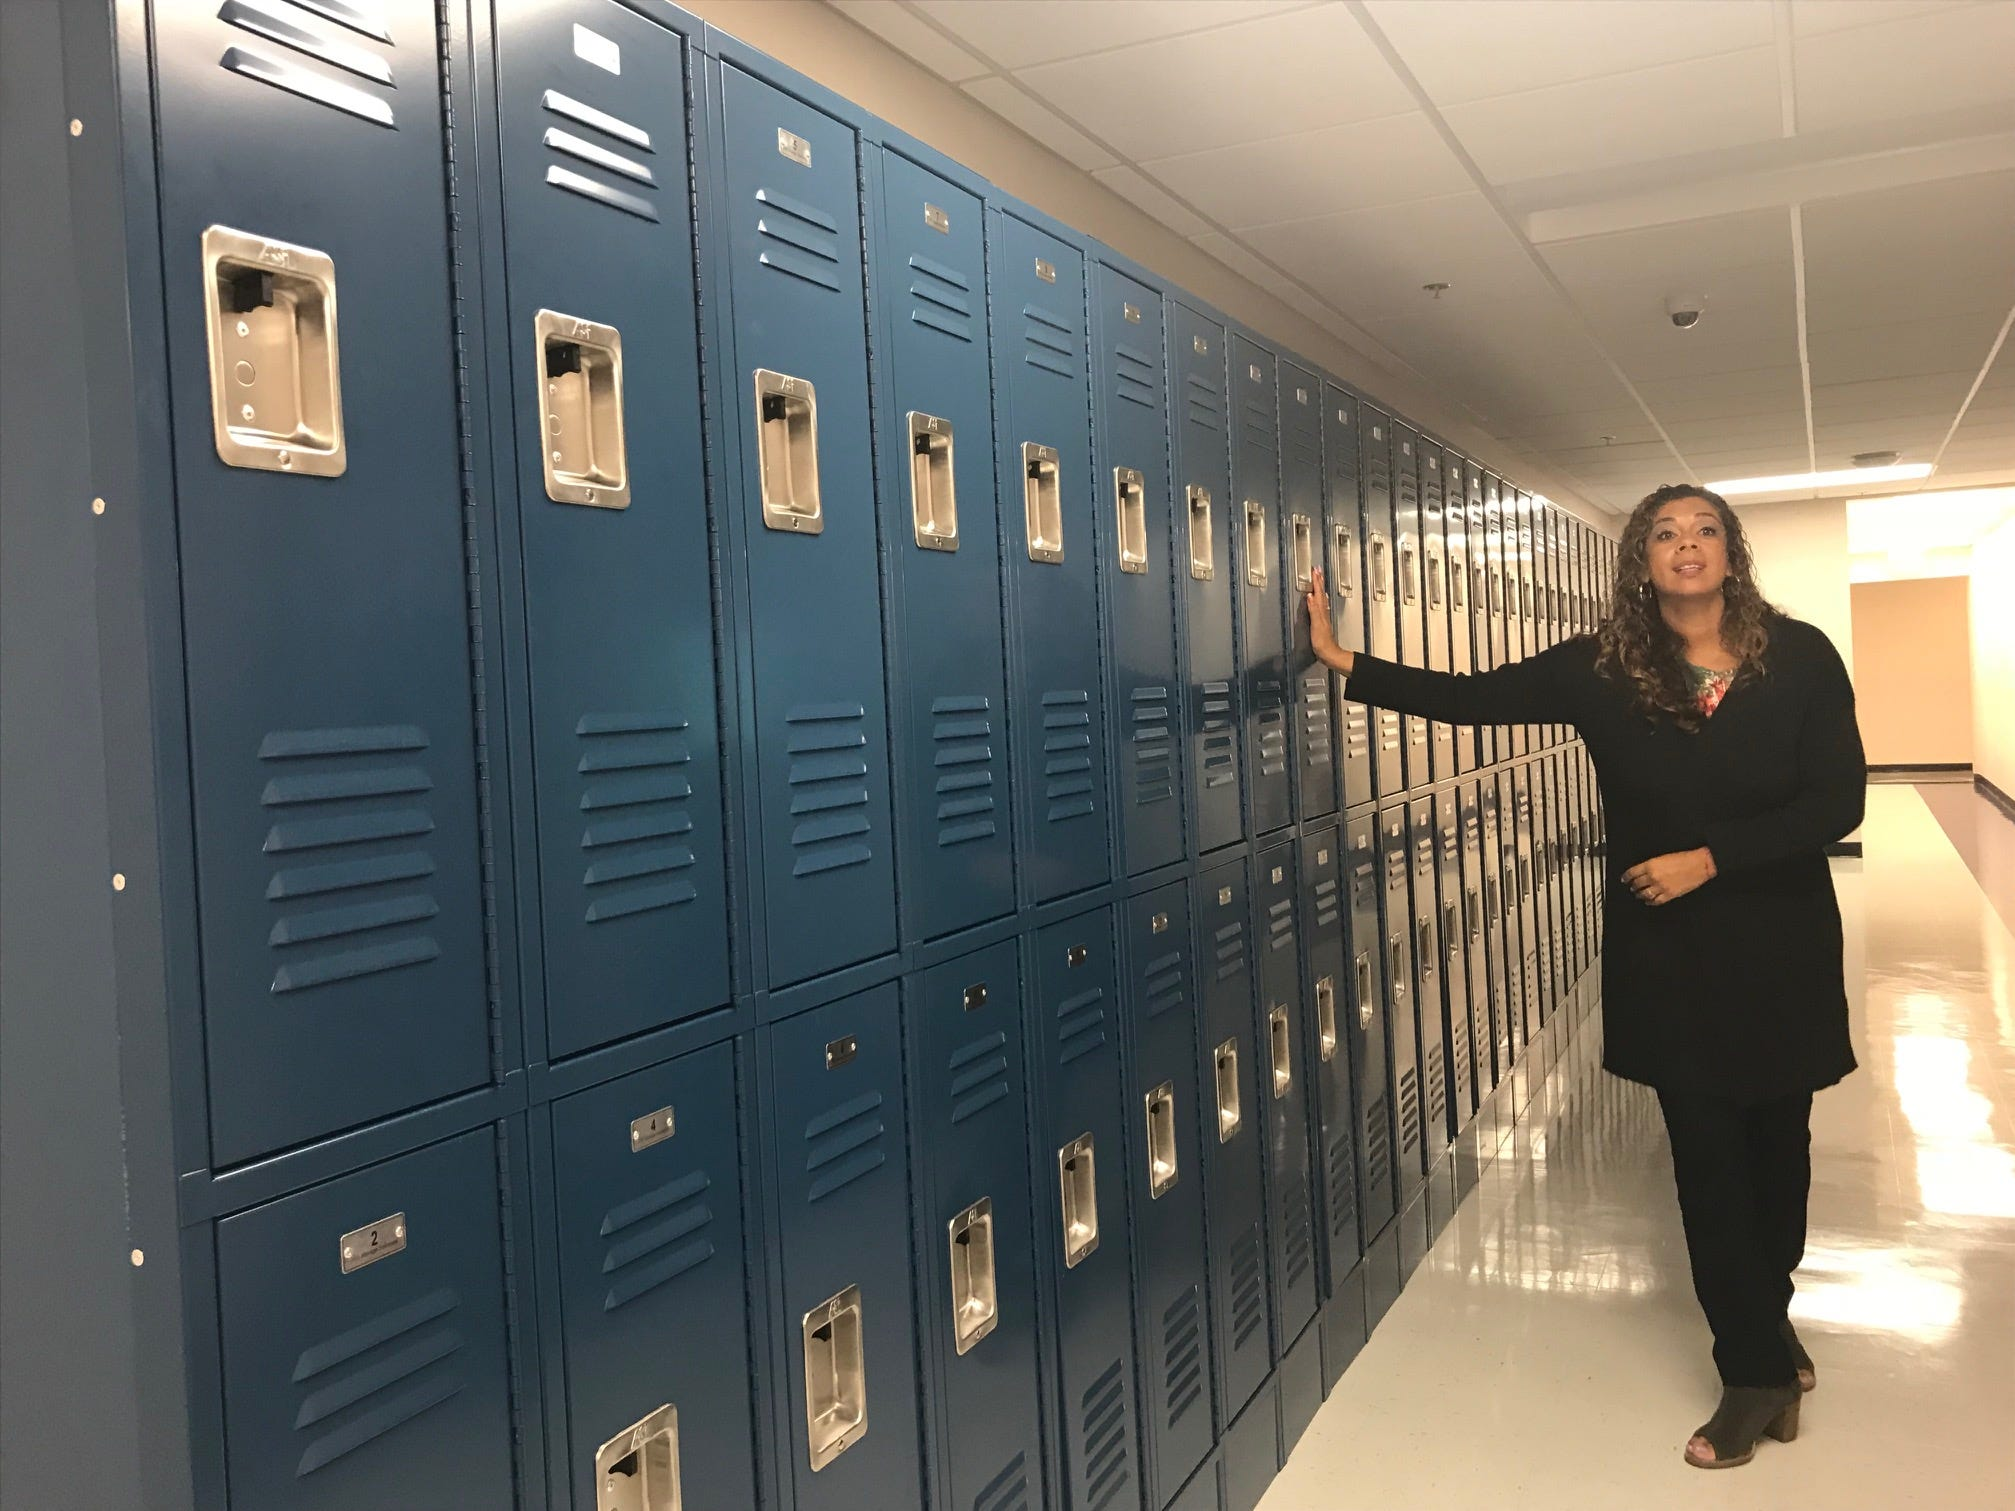 College Achieve Public School (CAPS) Executive Director Rachelle Nelson checks out the new lockers. With fresh, bold blue paint on its pristine walls, College Achieve CentralHigh School welcomed its first students Aug. 27. More than 300 students from Somerset, Middlesex and Union countieshave been enrolled in the charter high school.